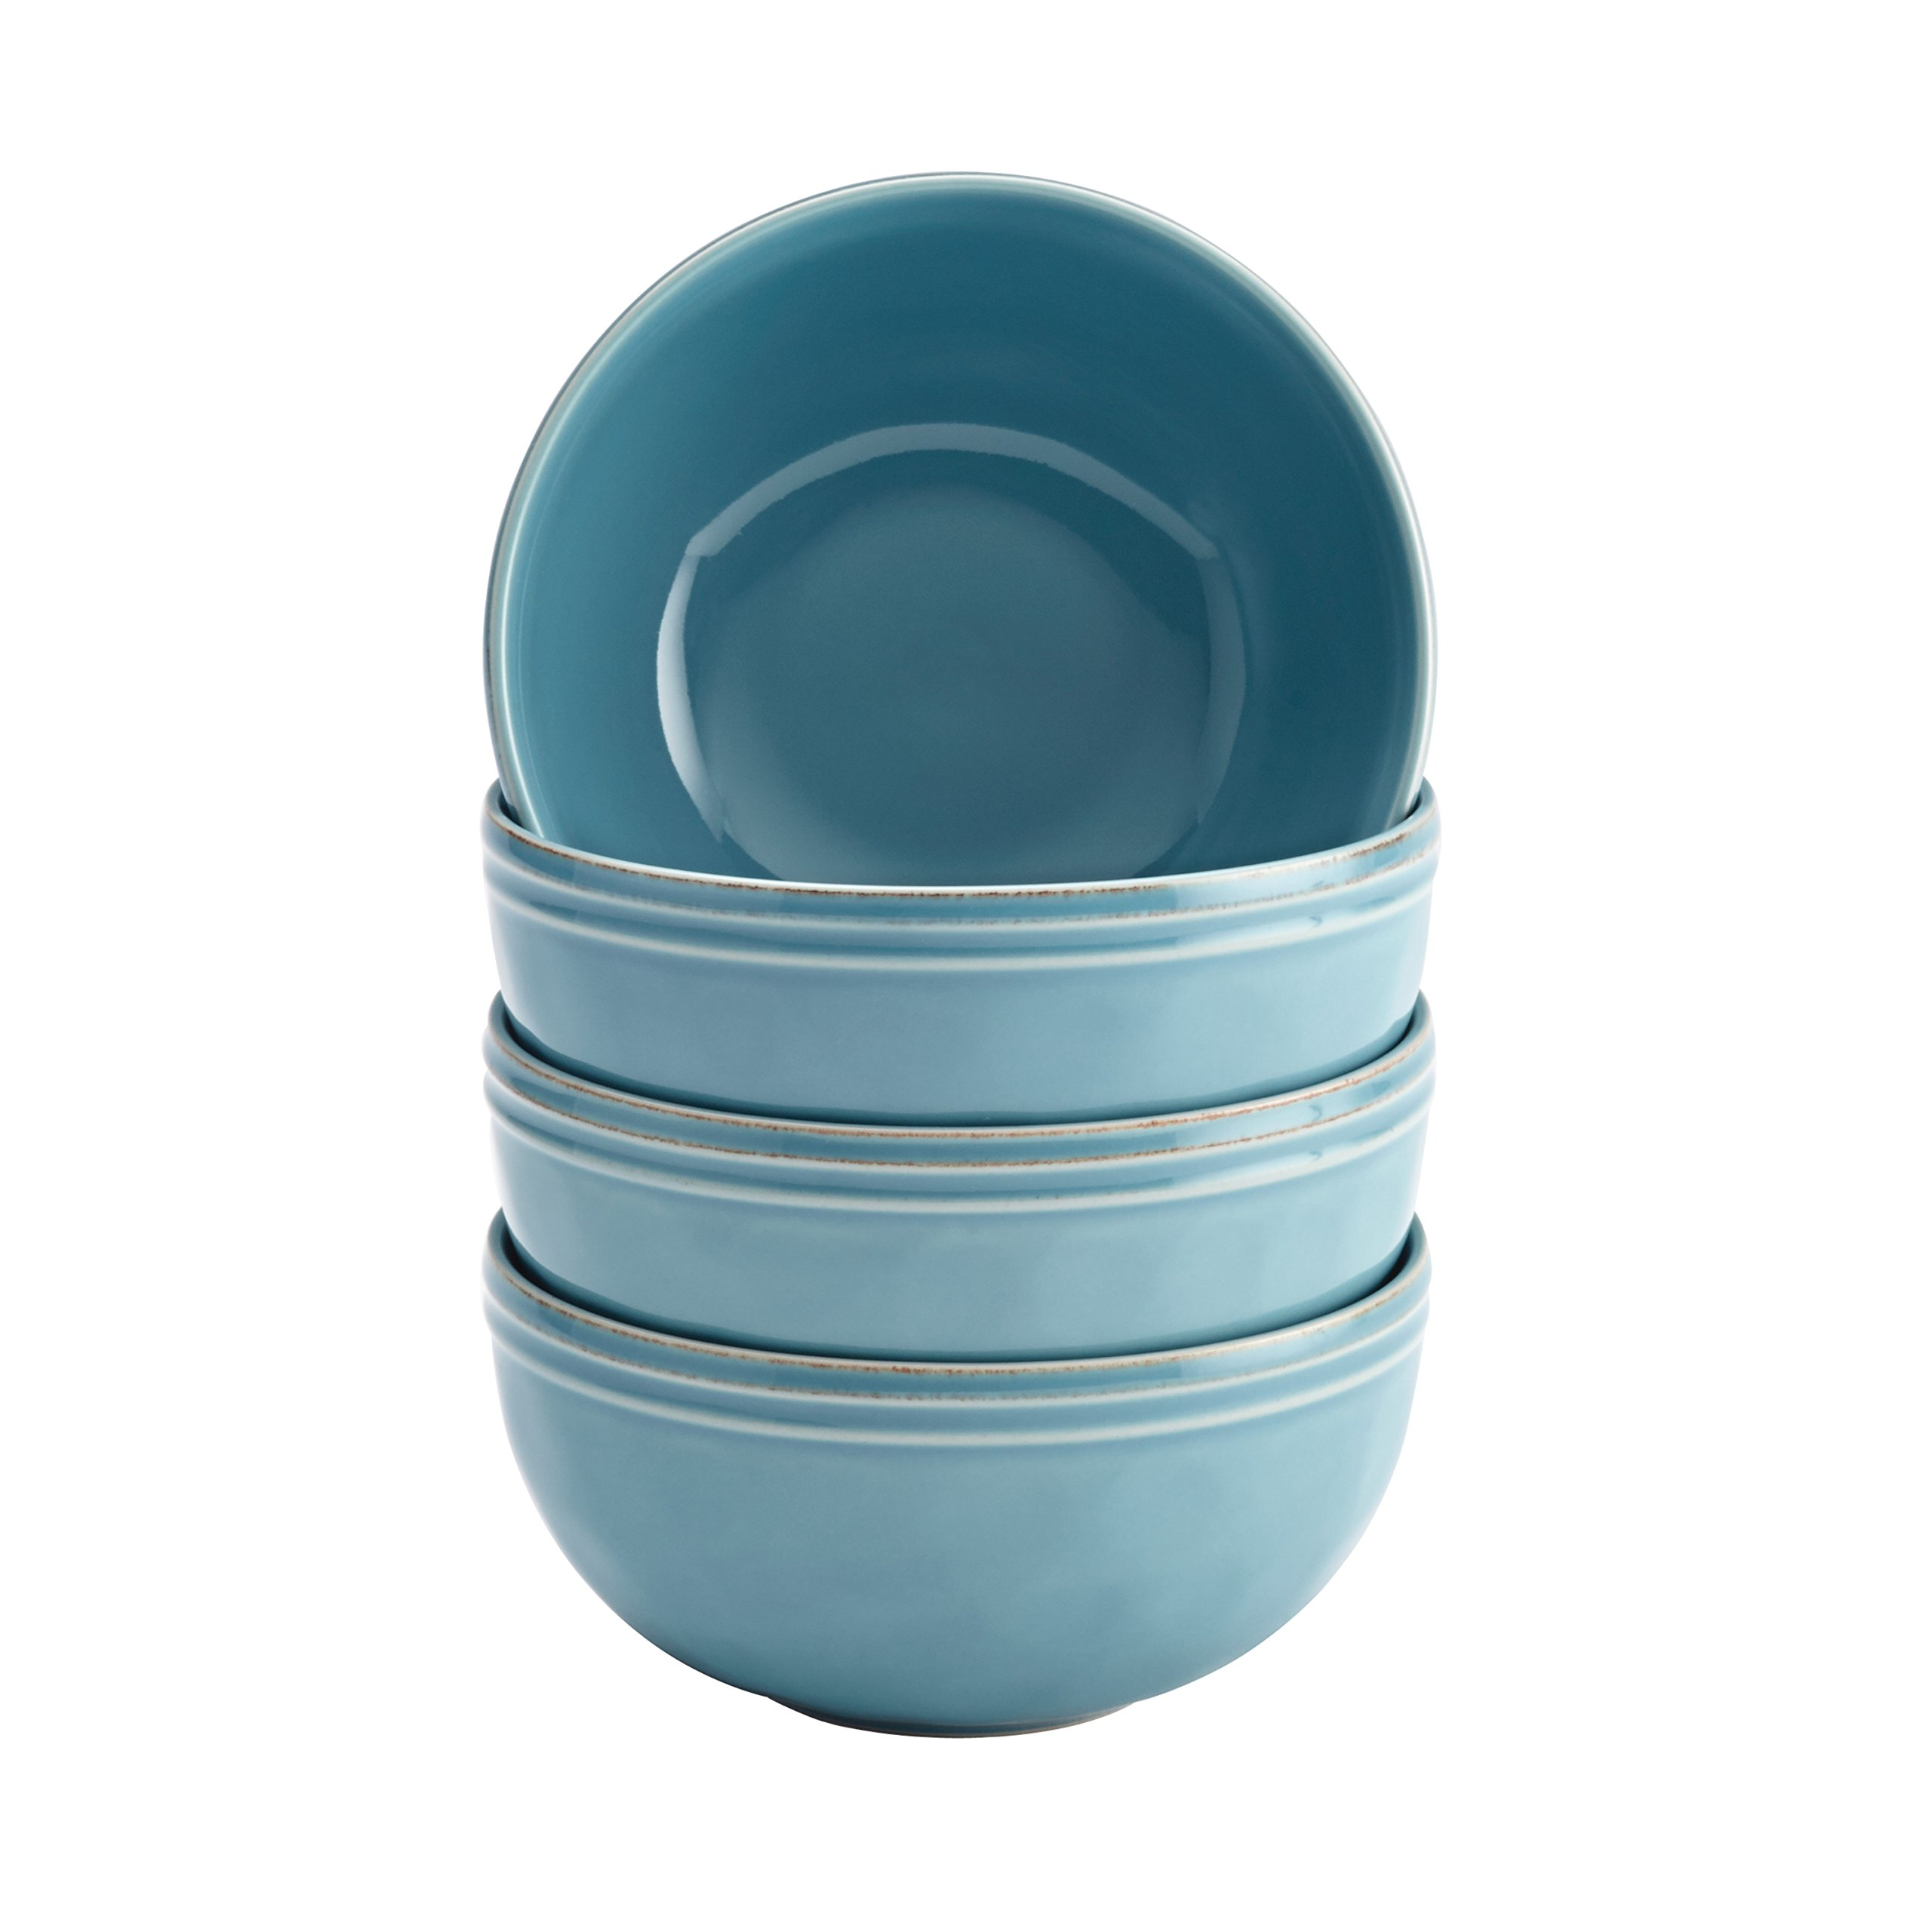 Rachael Ray Cucina Dinnerware 16-Piece Stoneware Dinnerware Set, Agave Blue by Rachael Ray (Image #4)